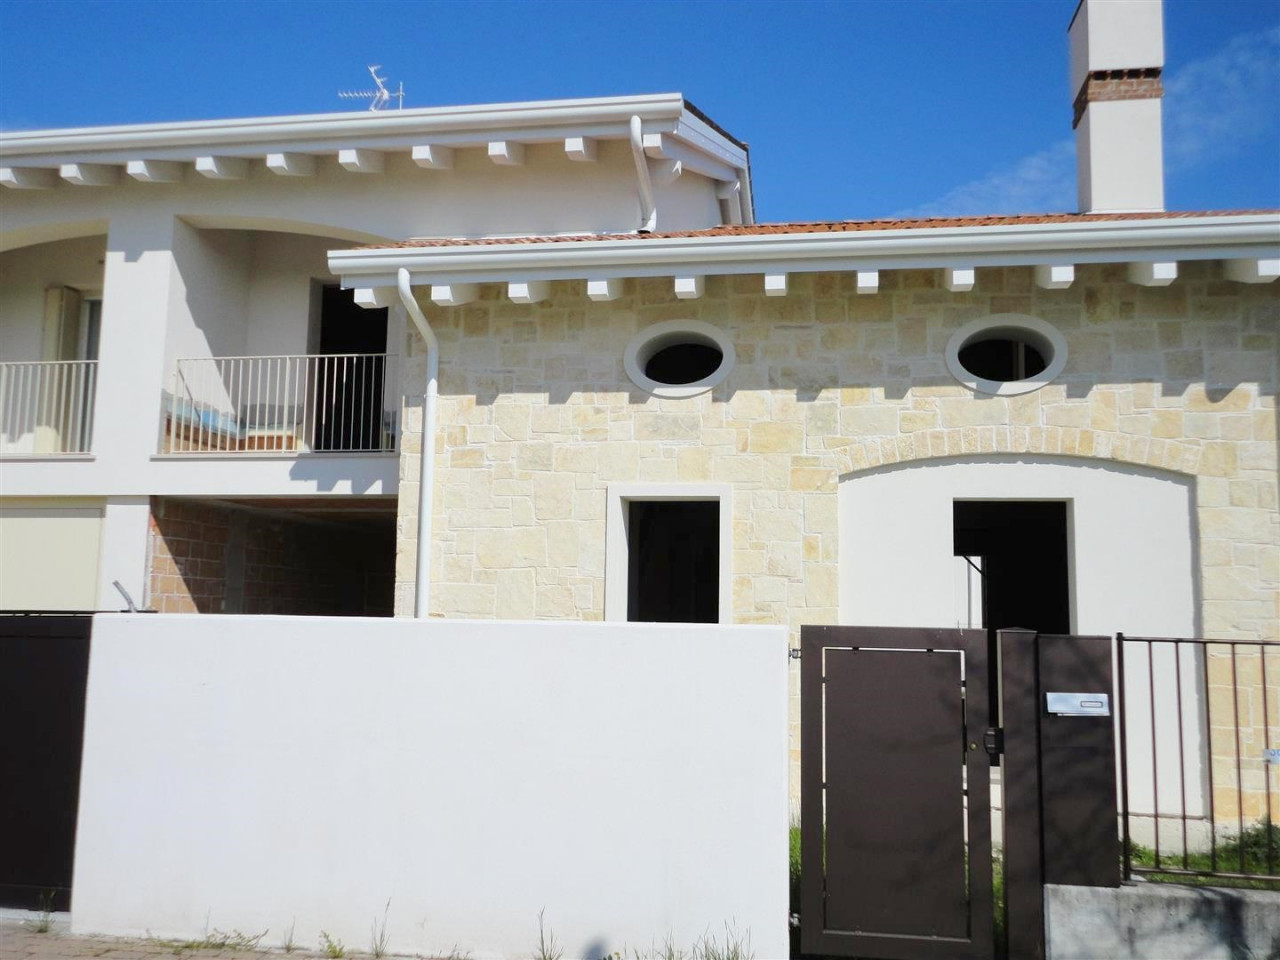 D300 Bifamiliare in vendita a Montegrotto Terme https://media.gestionaleimmobiliare.it/foto/annunci/200302/2197051/1280x1280/002__dsc07931__large.jpg